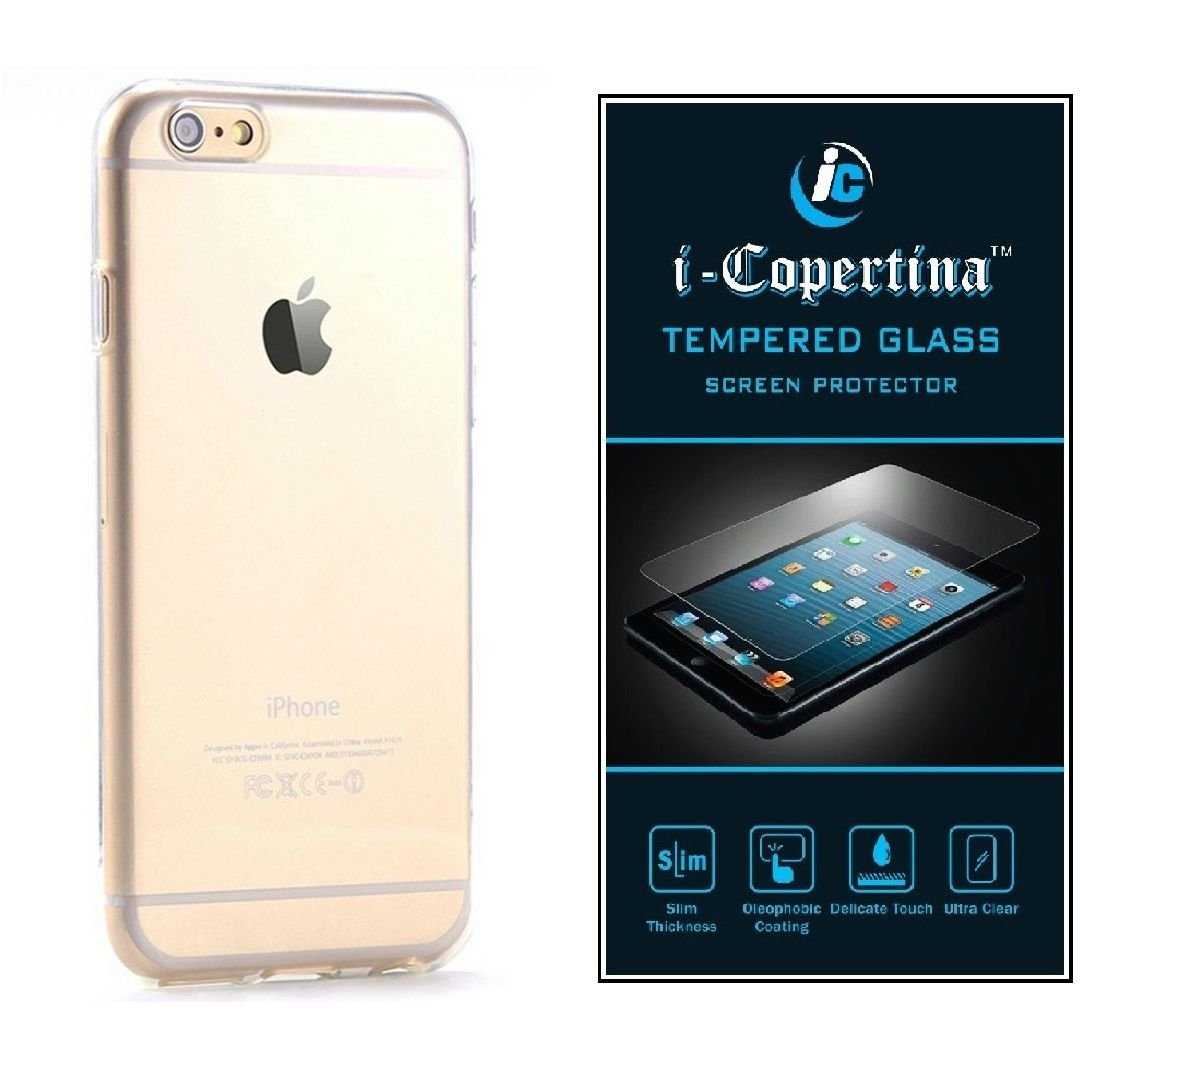 Apple Iphone 7 Transparent Back Cover And Tempered Glass Combo Set By Icopertina Mobile Cover Combos Online At Low Prices Snapdeal India